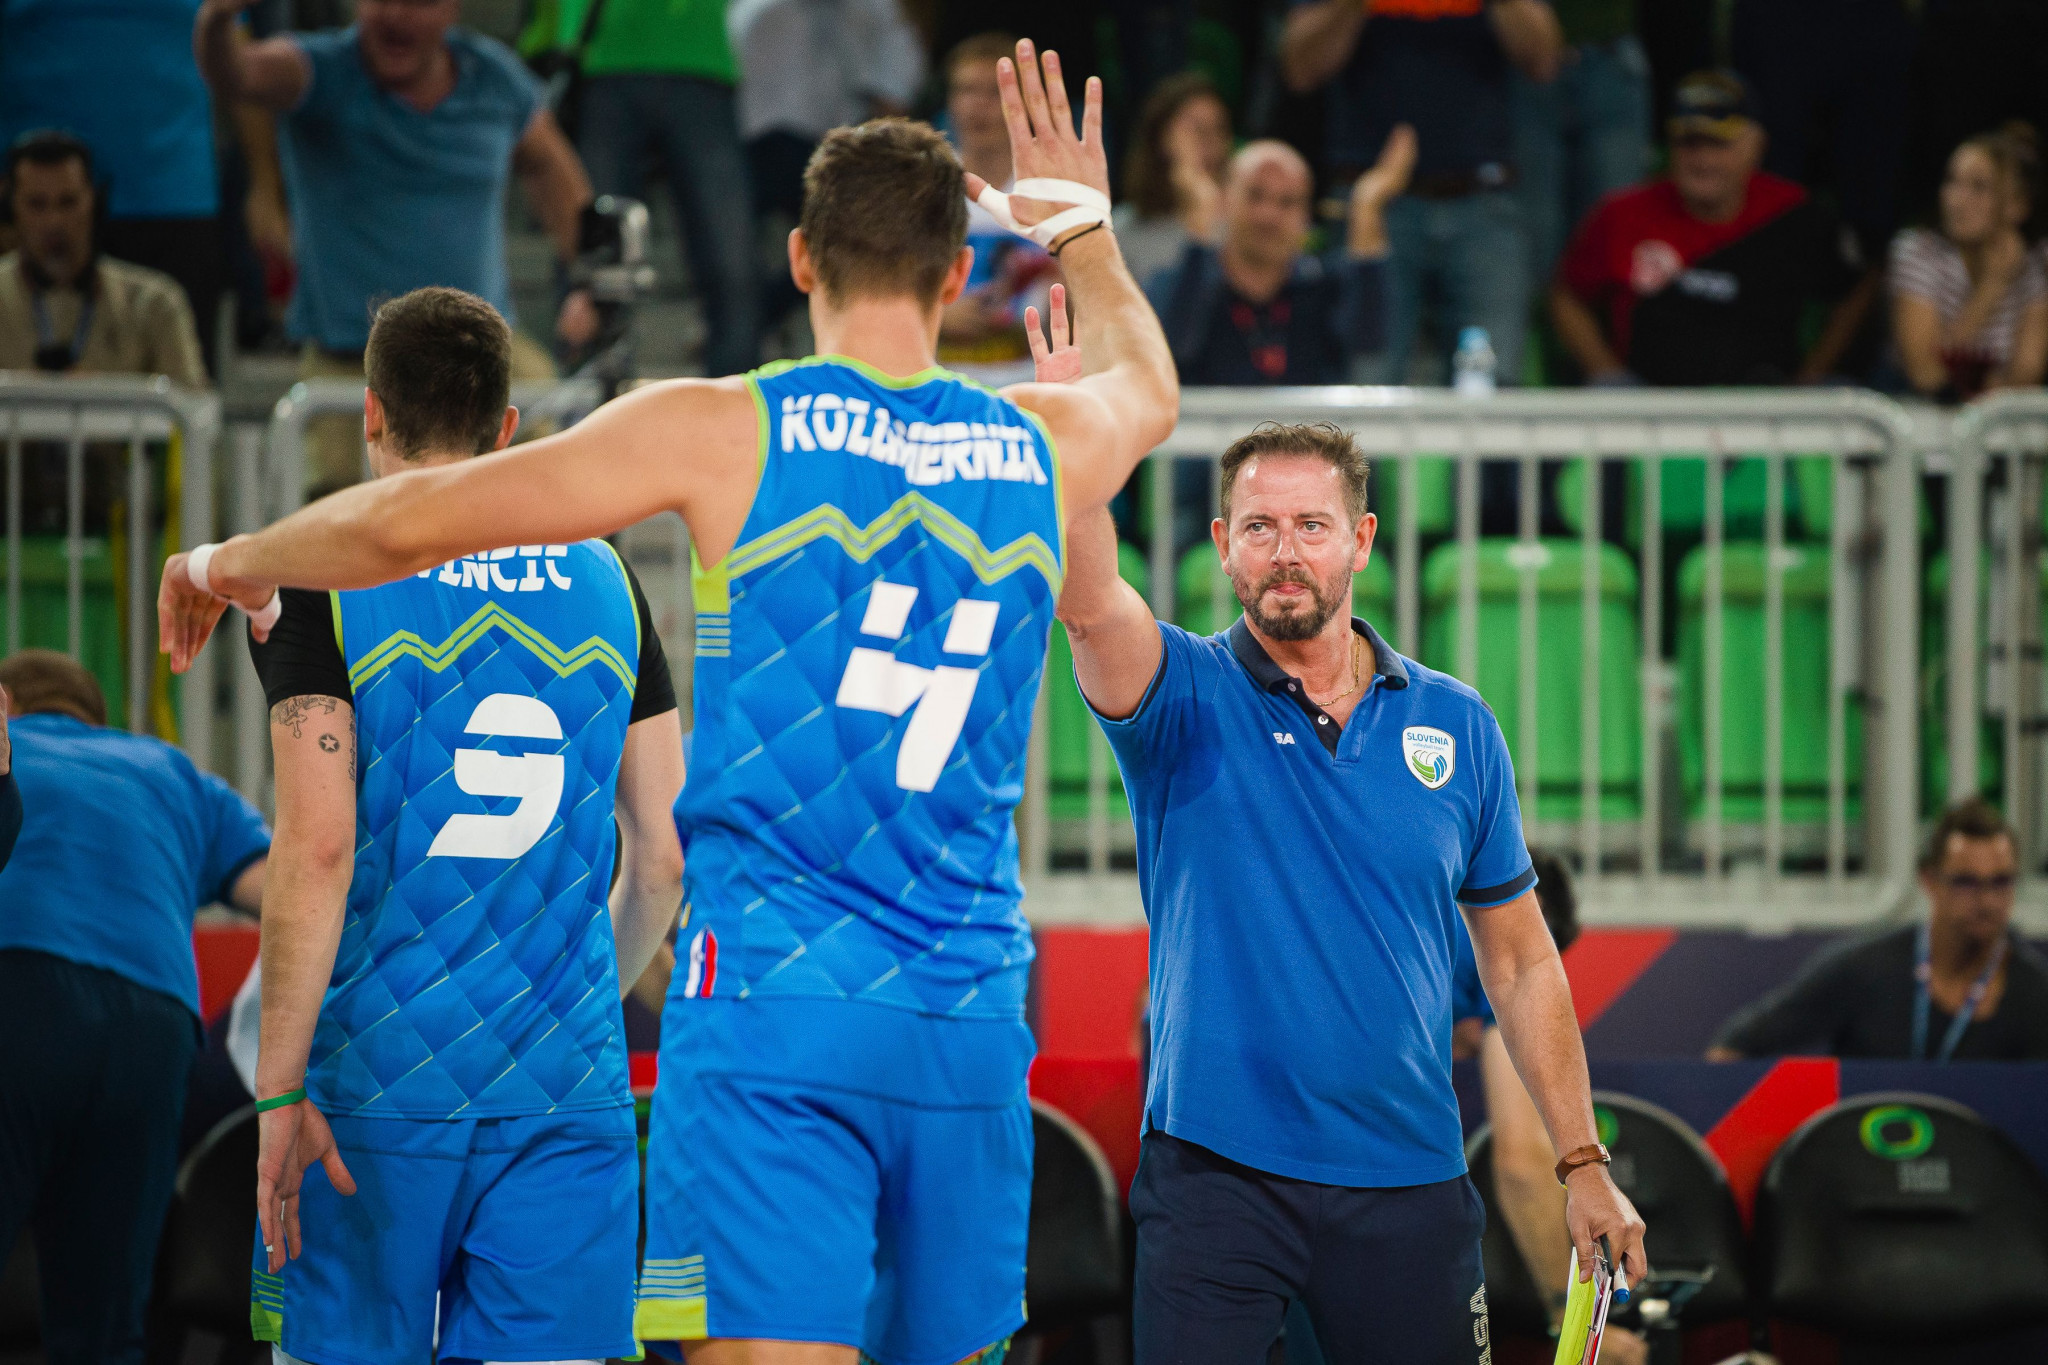 Slovenia reach men's Euro Volleyball final with sensational victory over Poland